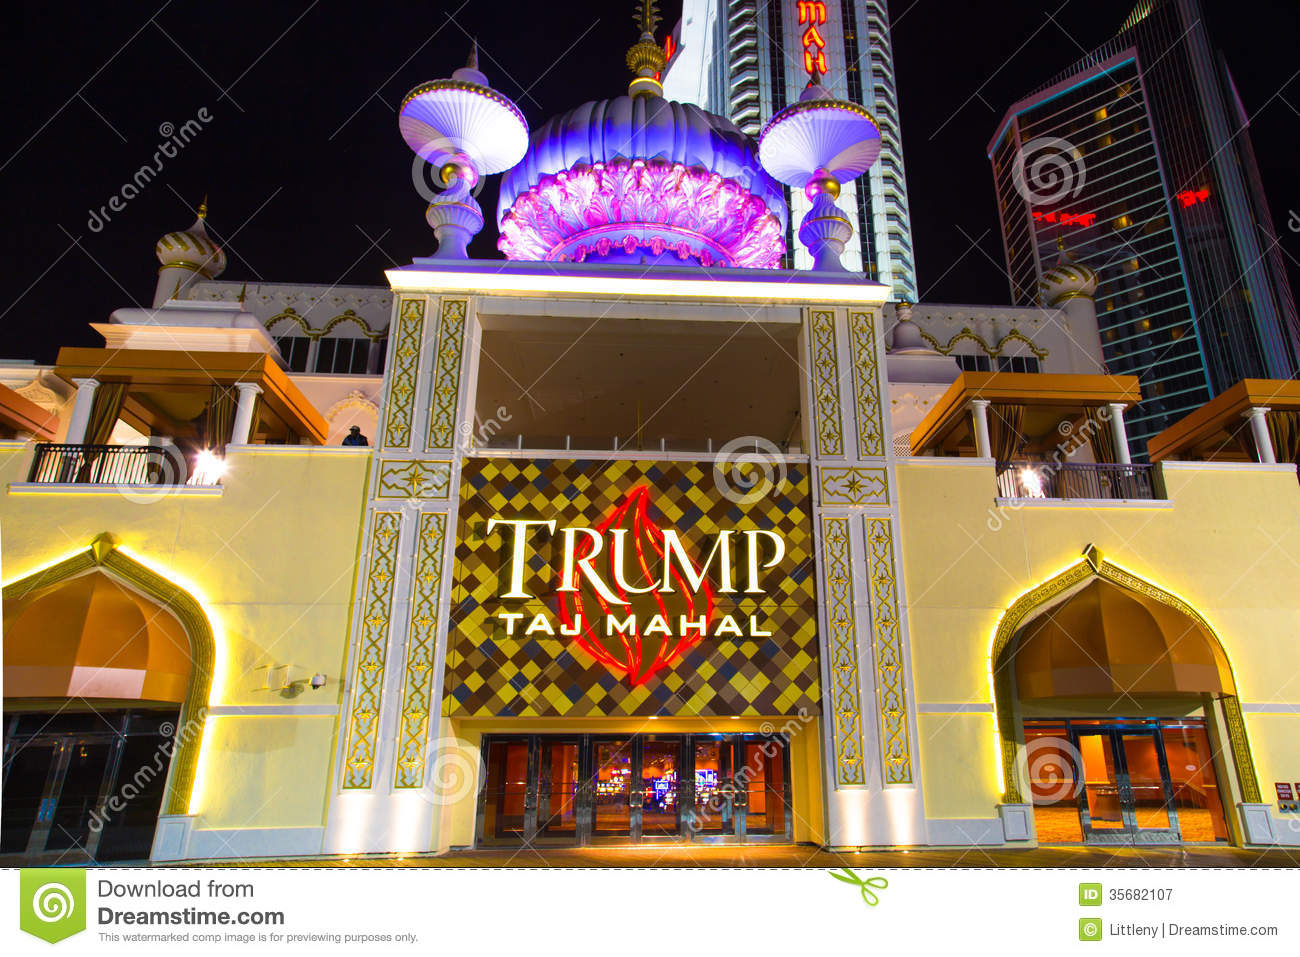 Atlantic casino city mahal nj resort taj trump atlantic city nj casino shows